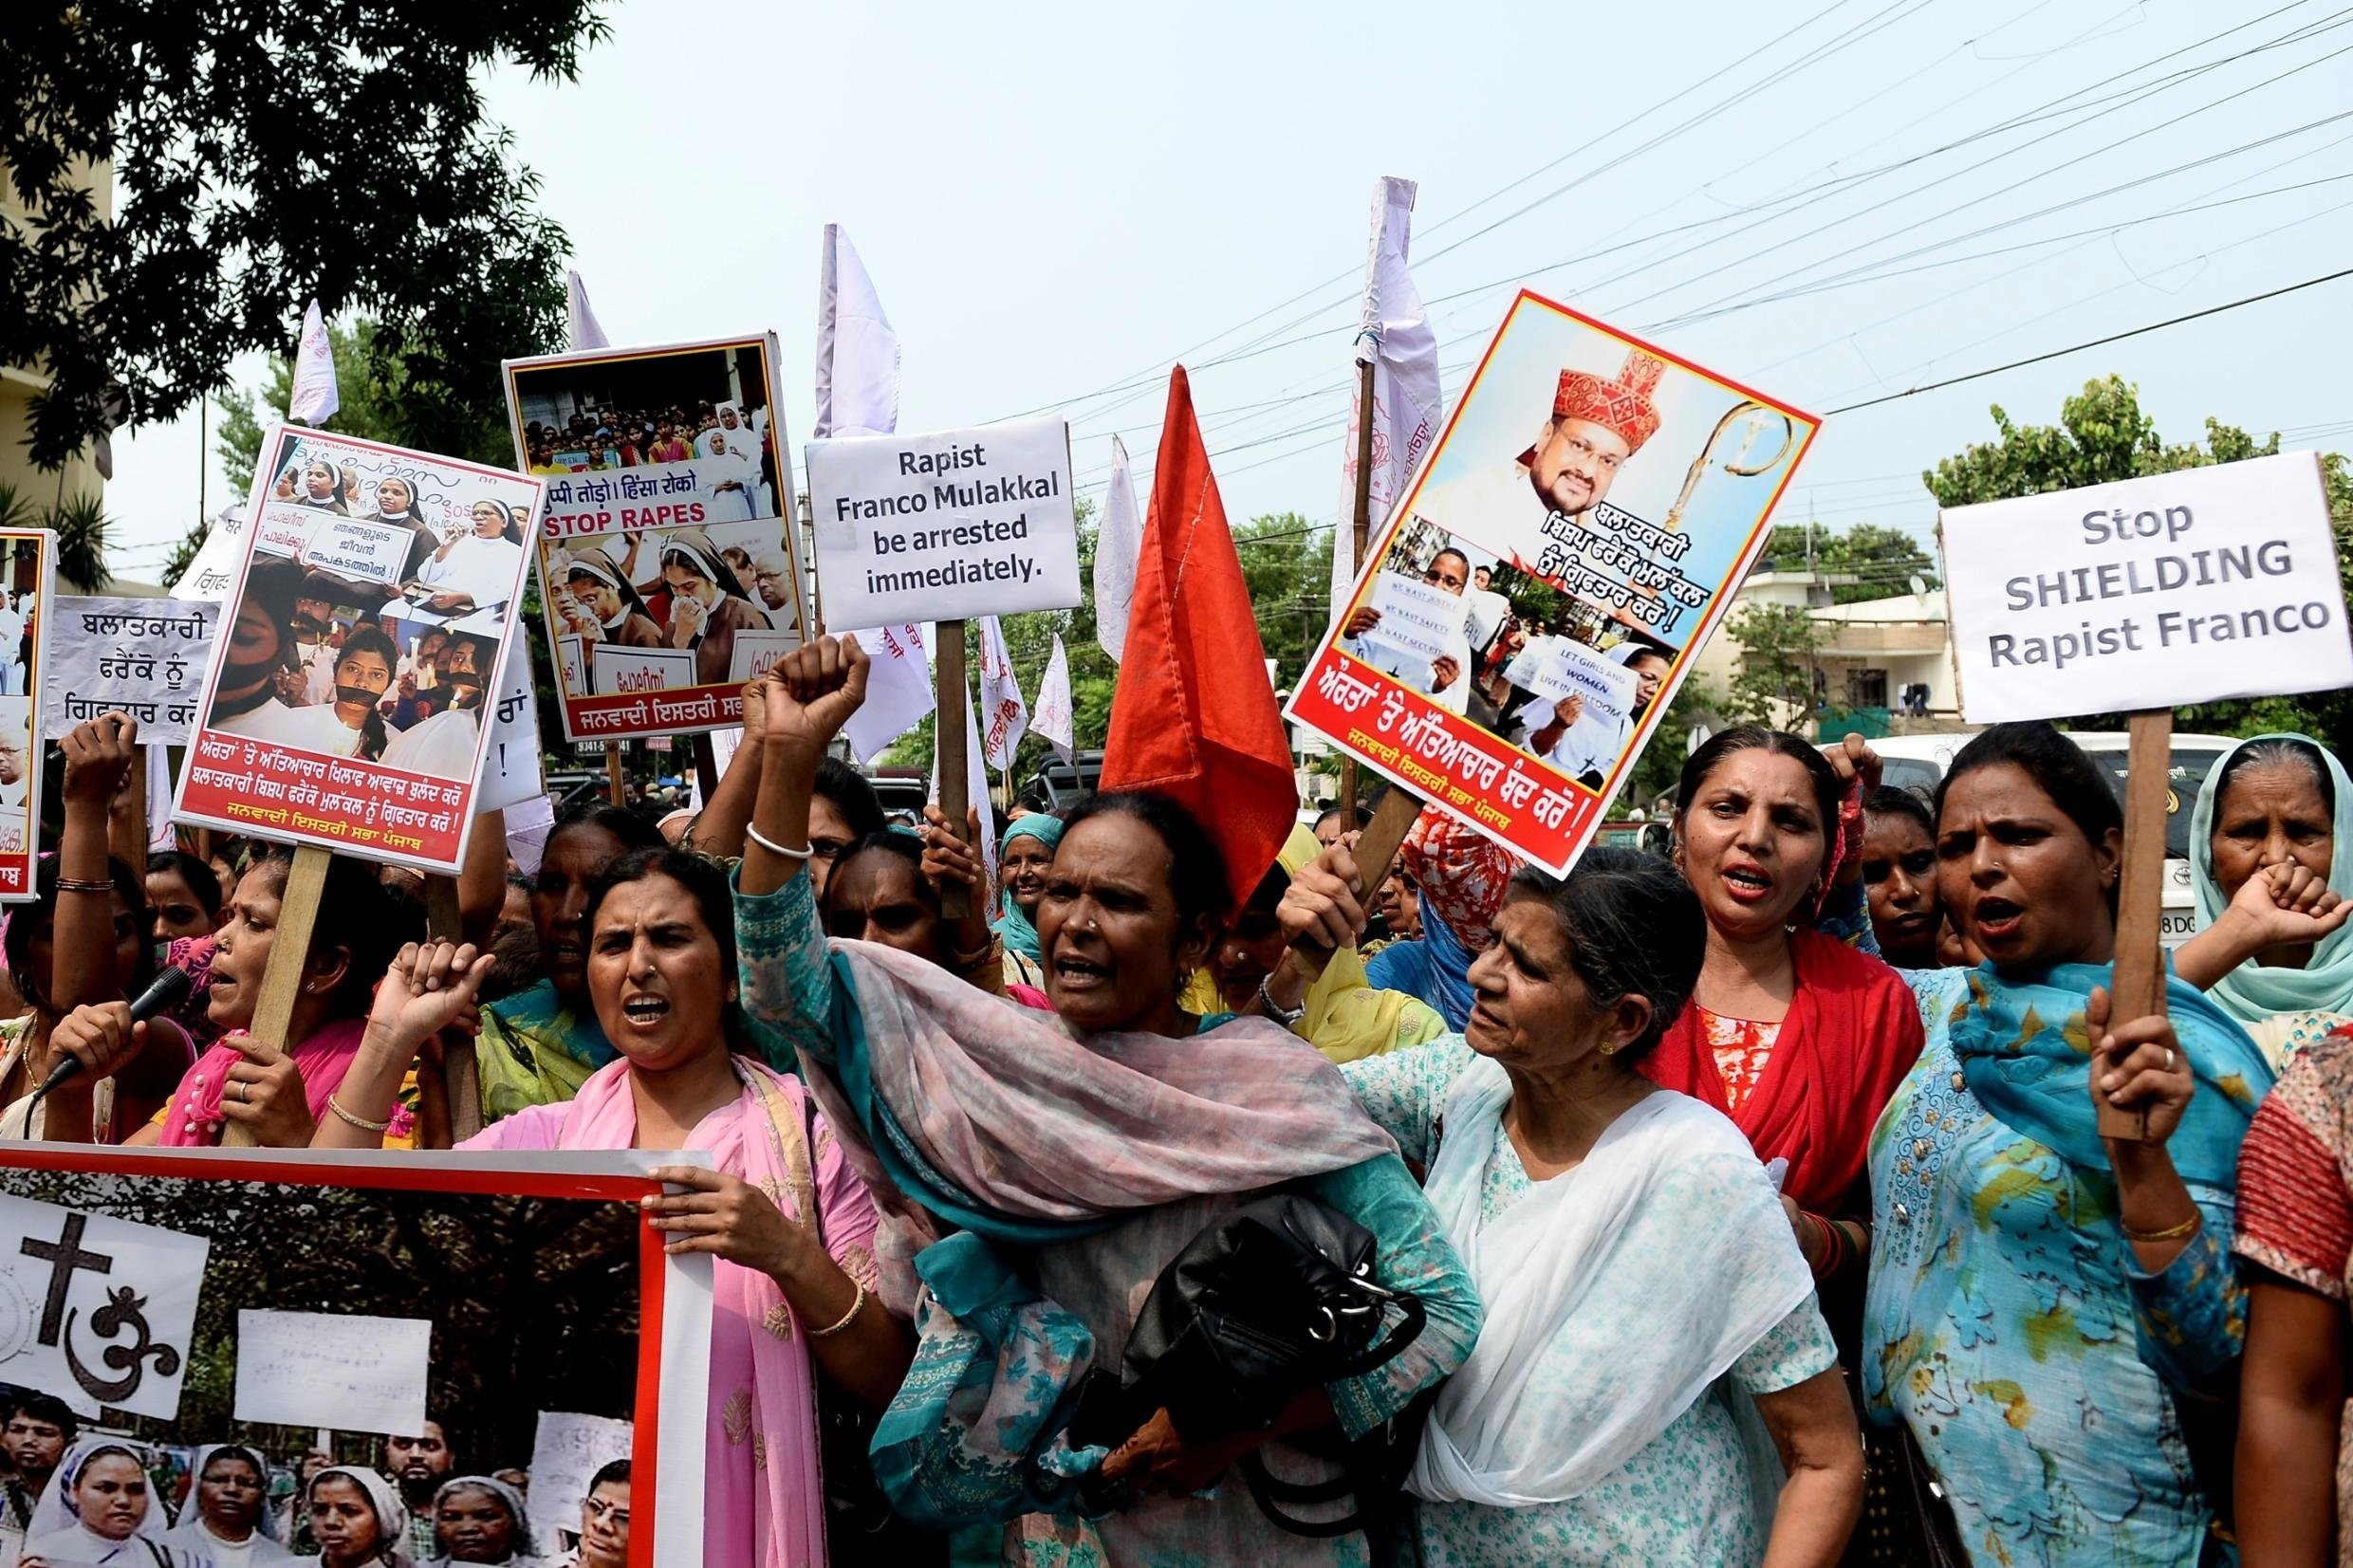 Indian women in Jalandharhold placards and chant slogans during protest march to demand the the arrest of Roman Catholic church Bishop Franco Mullakal, who is accused of raping a nun,.